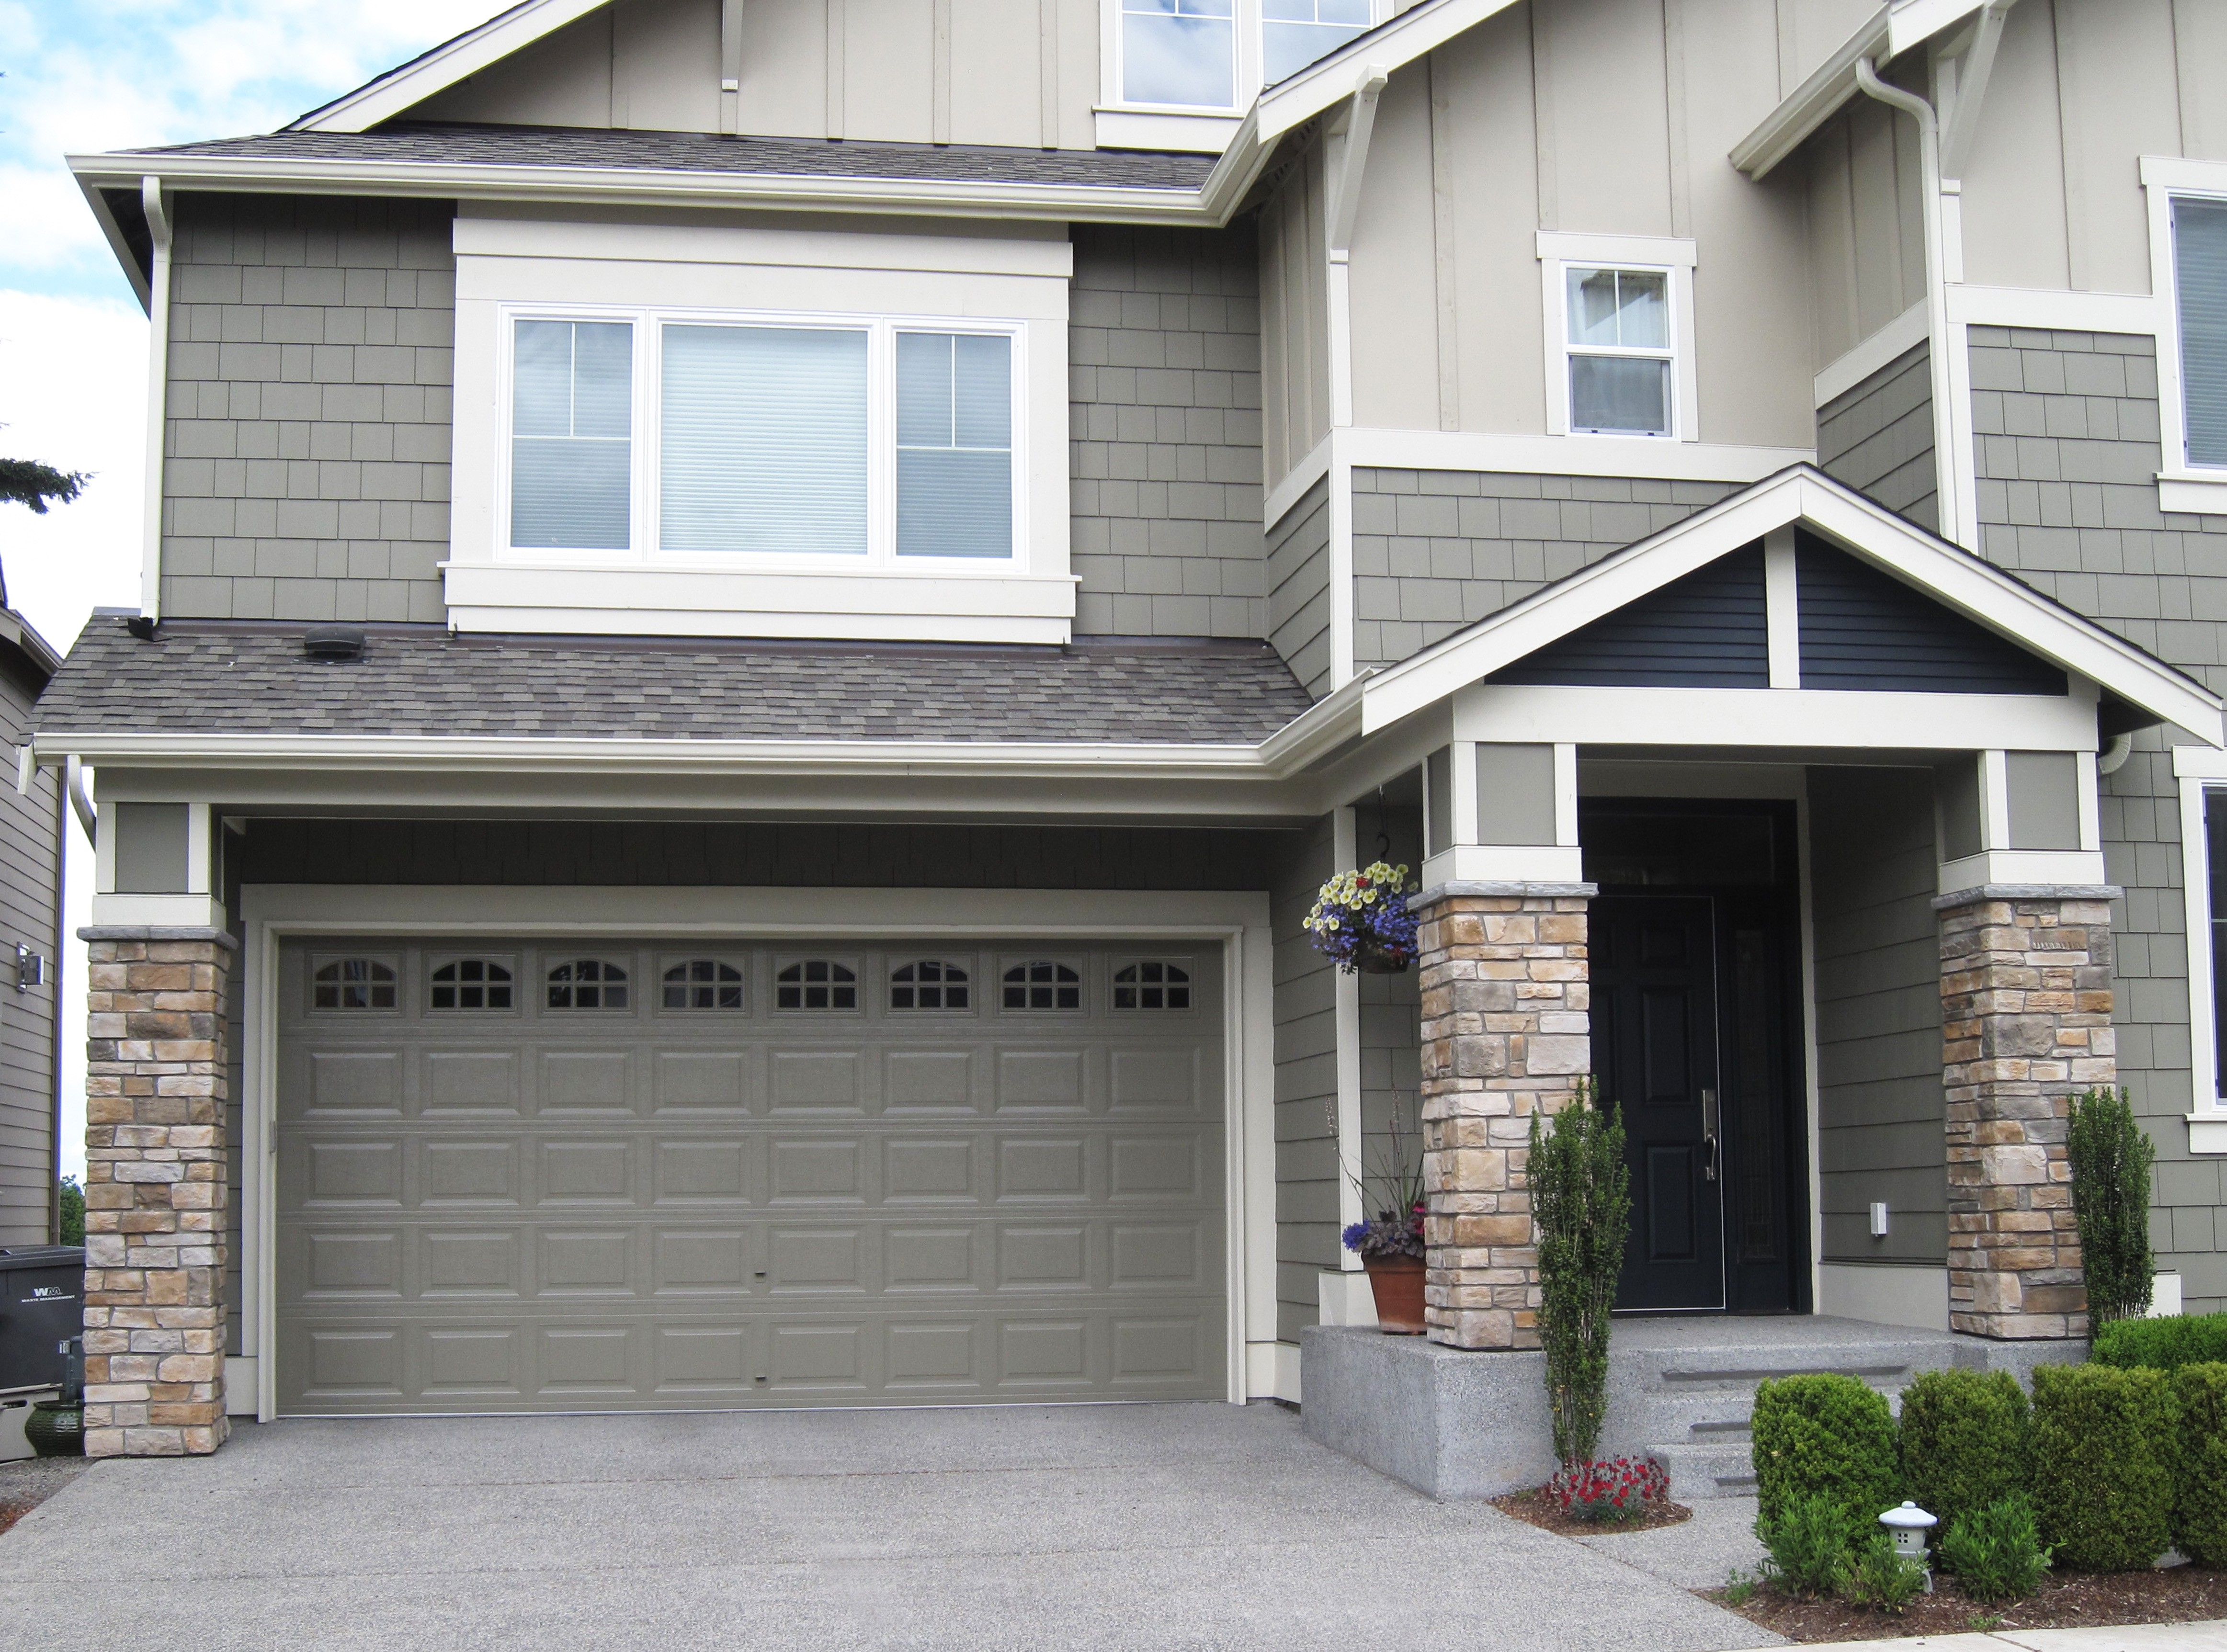 3450 #4A5F2F Therma Tech Traditional Panel Cascade Northwest Door Canada Ltd save image Wayne Dalton Insulated Garage Doors 38374650